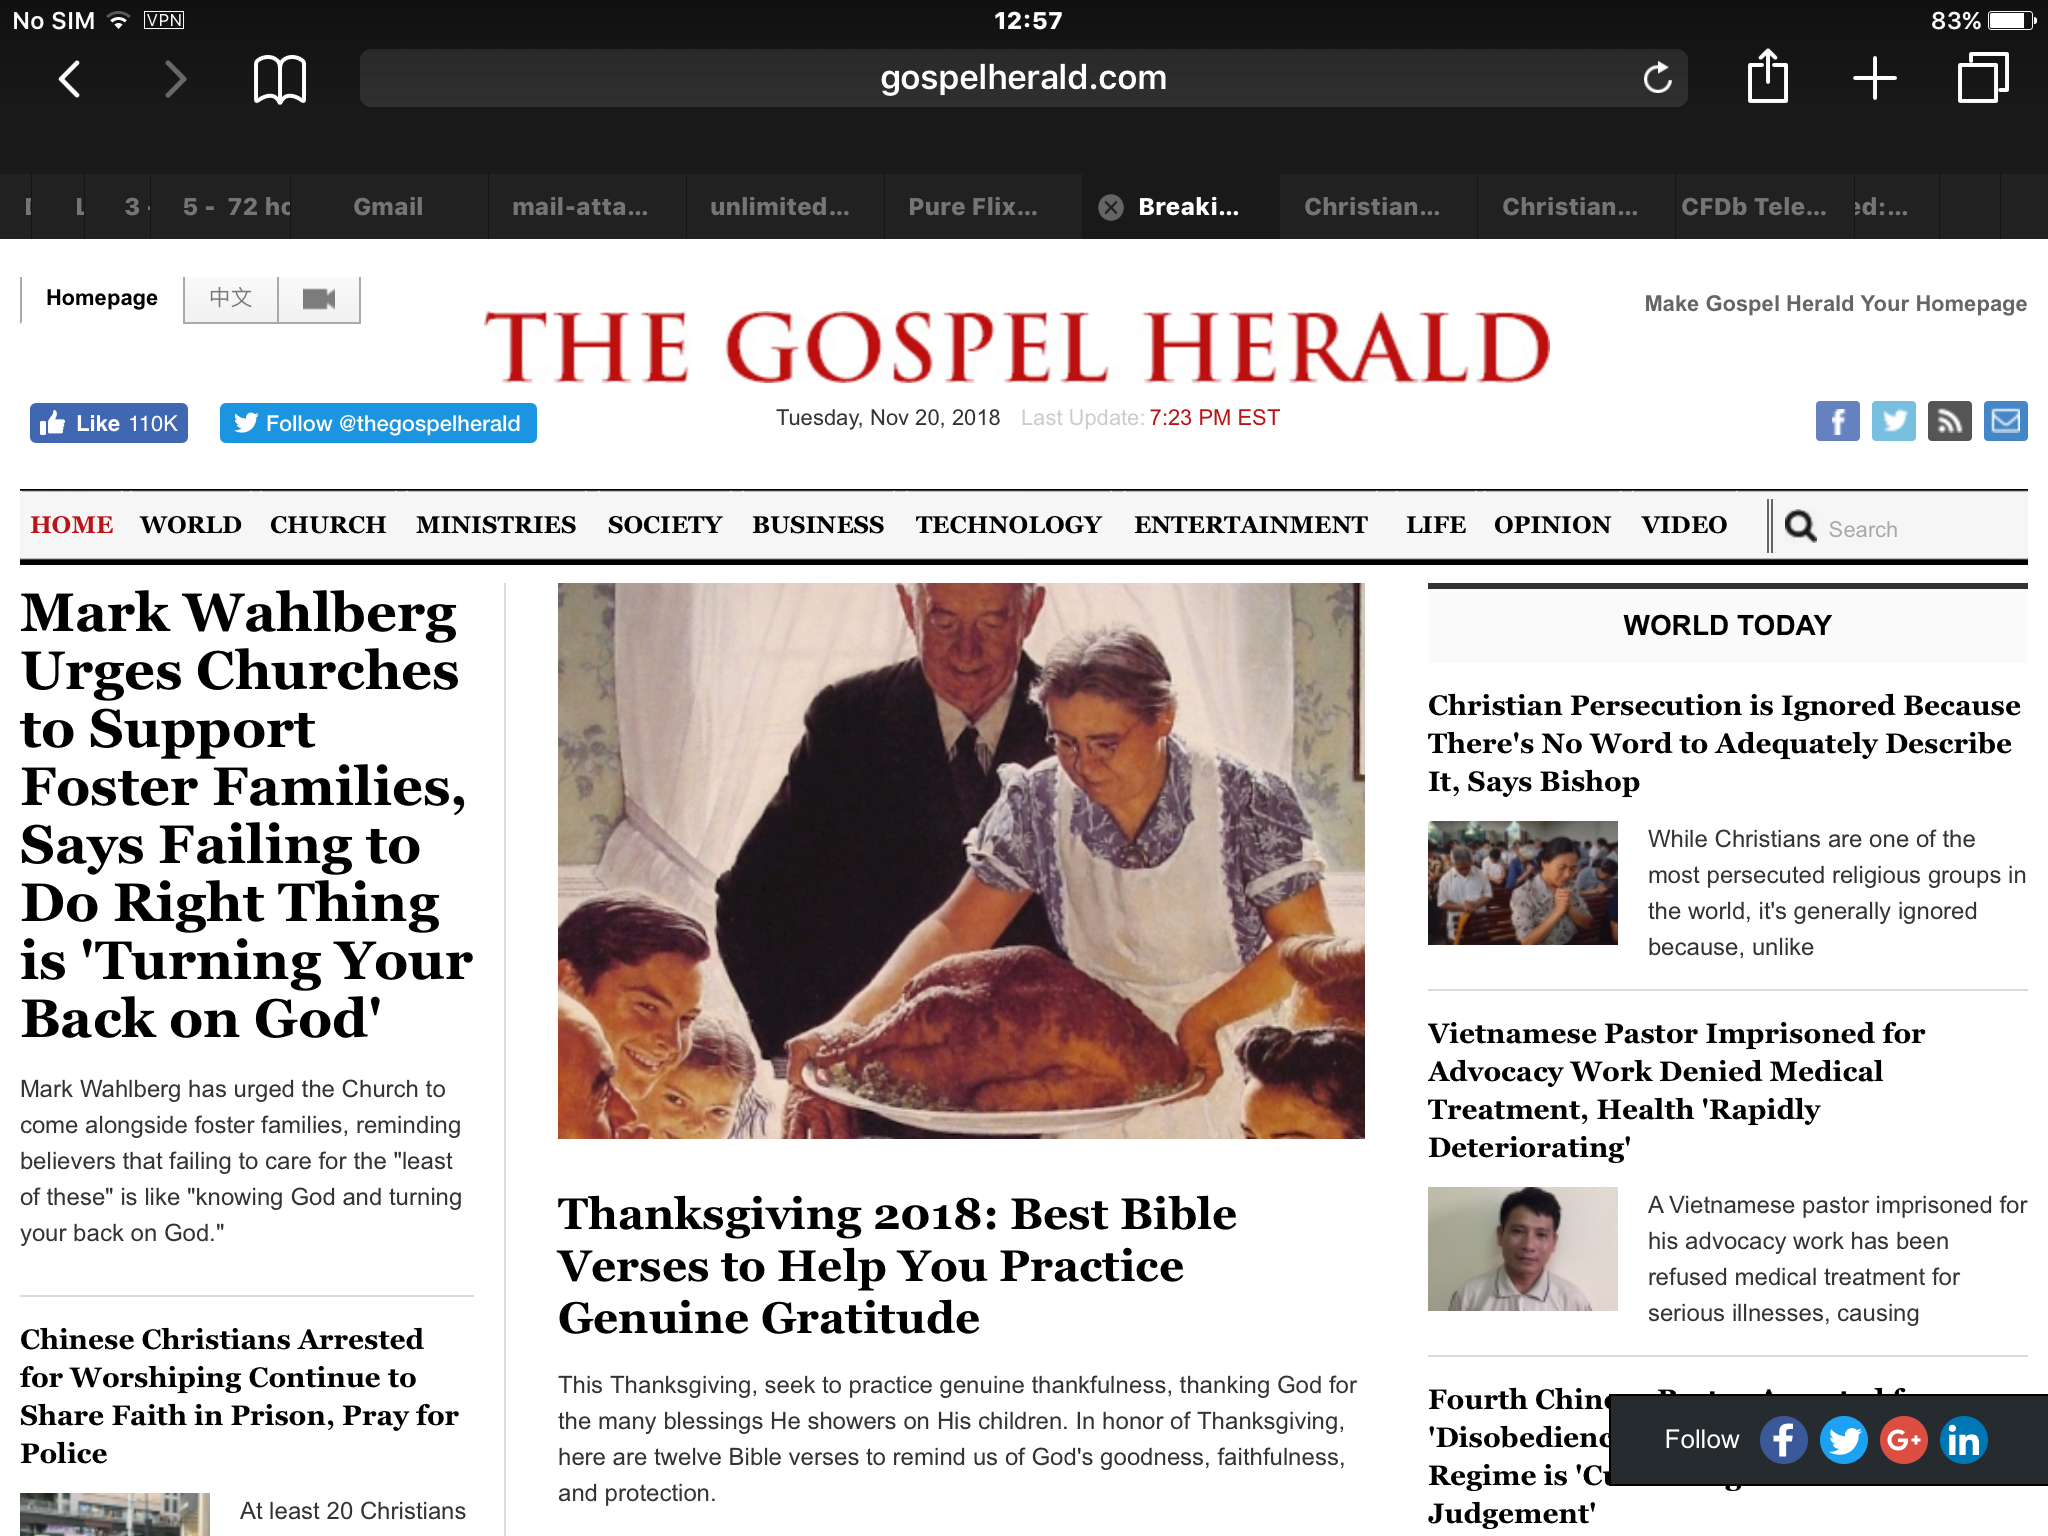 Christian News and Views All in One place